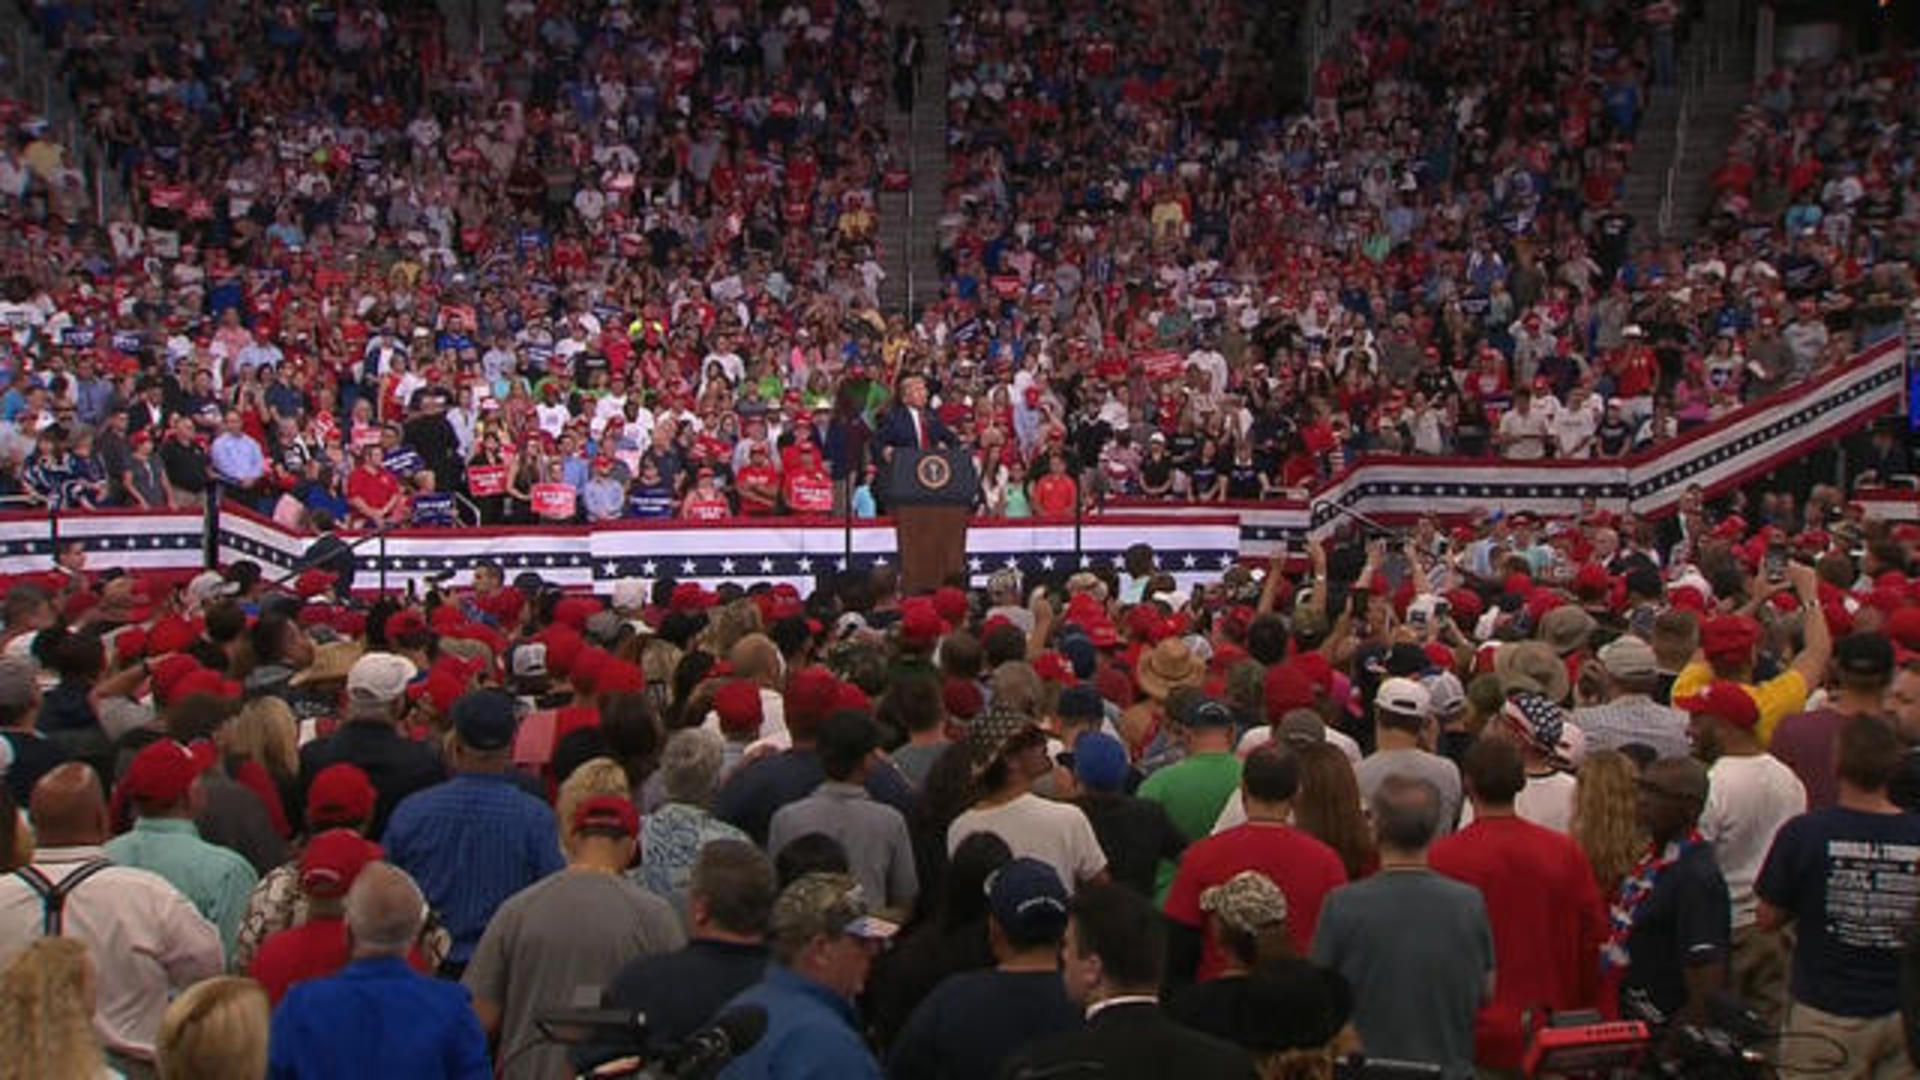 """Trump's rally draws large crowd but lacks """"intense pro-Trump enthusiasm"""" of  past events - CBS News"""